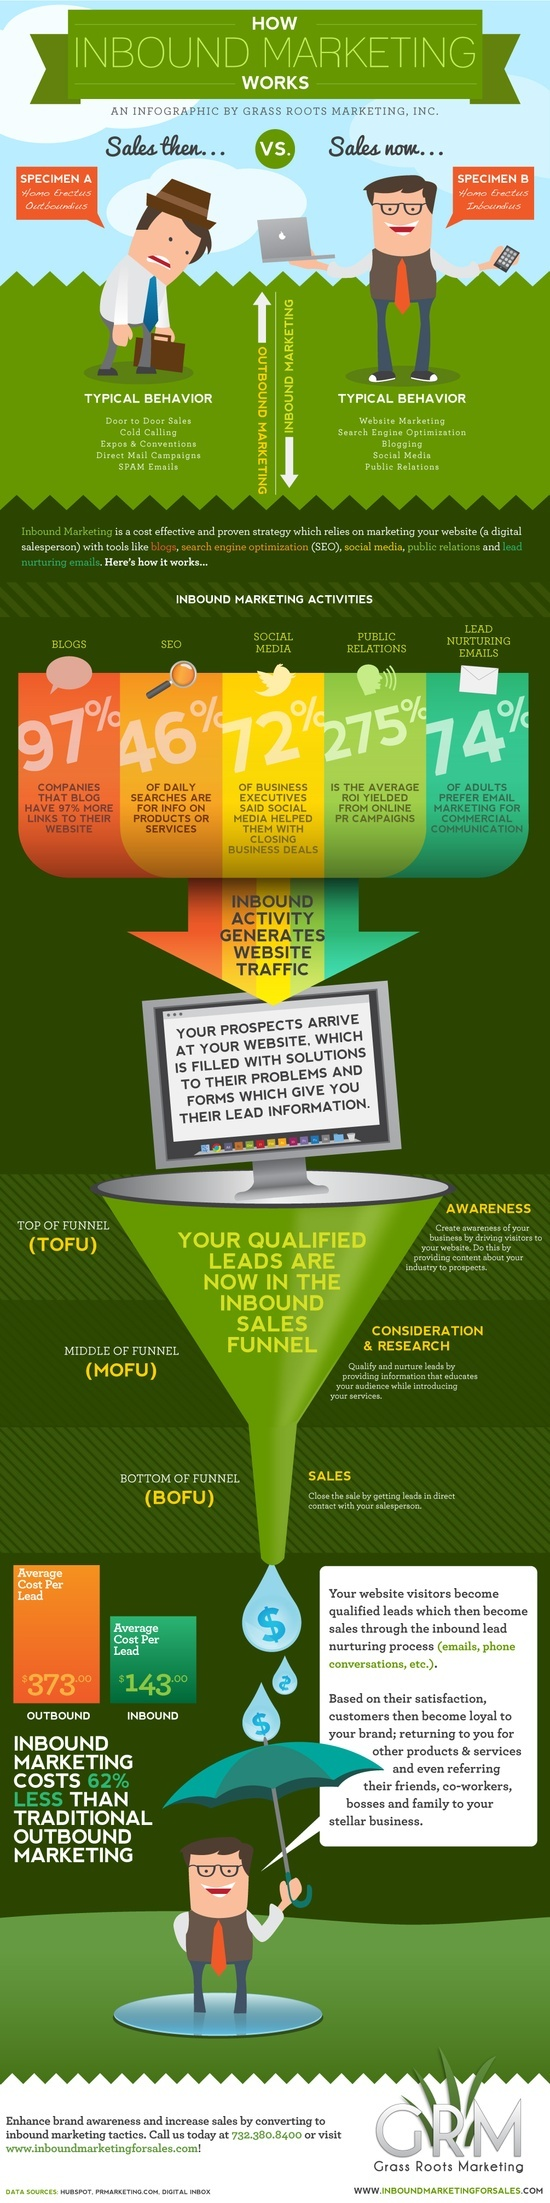 How Inbound Marketing Works